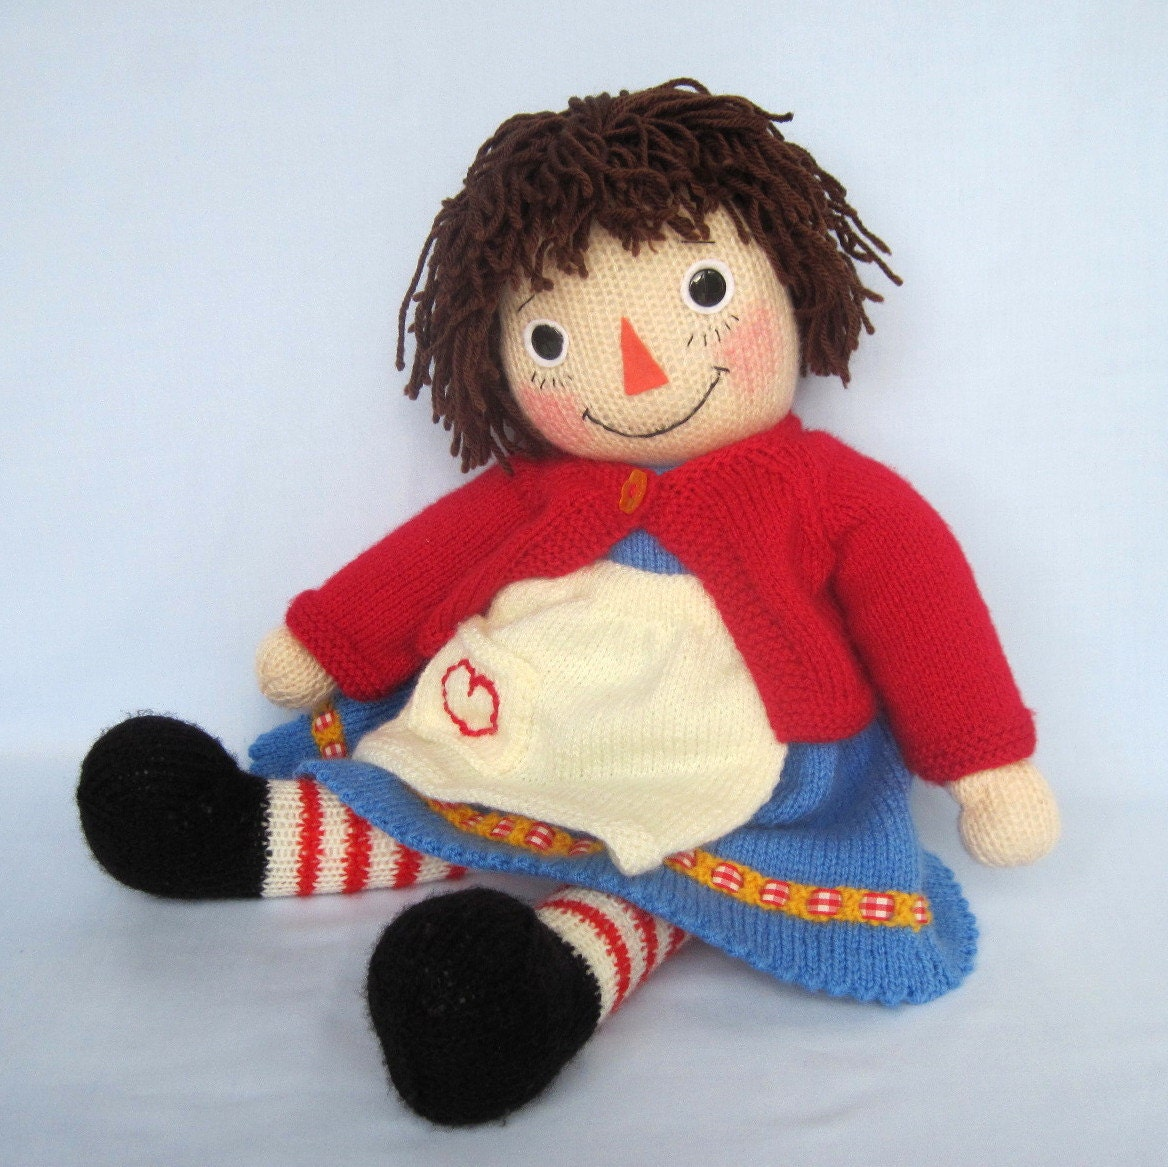 Knitted Doll Pattern : Knitted doll pattern MERRILY ANN Raggedy Ann style by dollytime